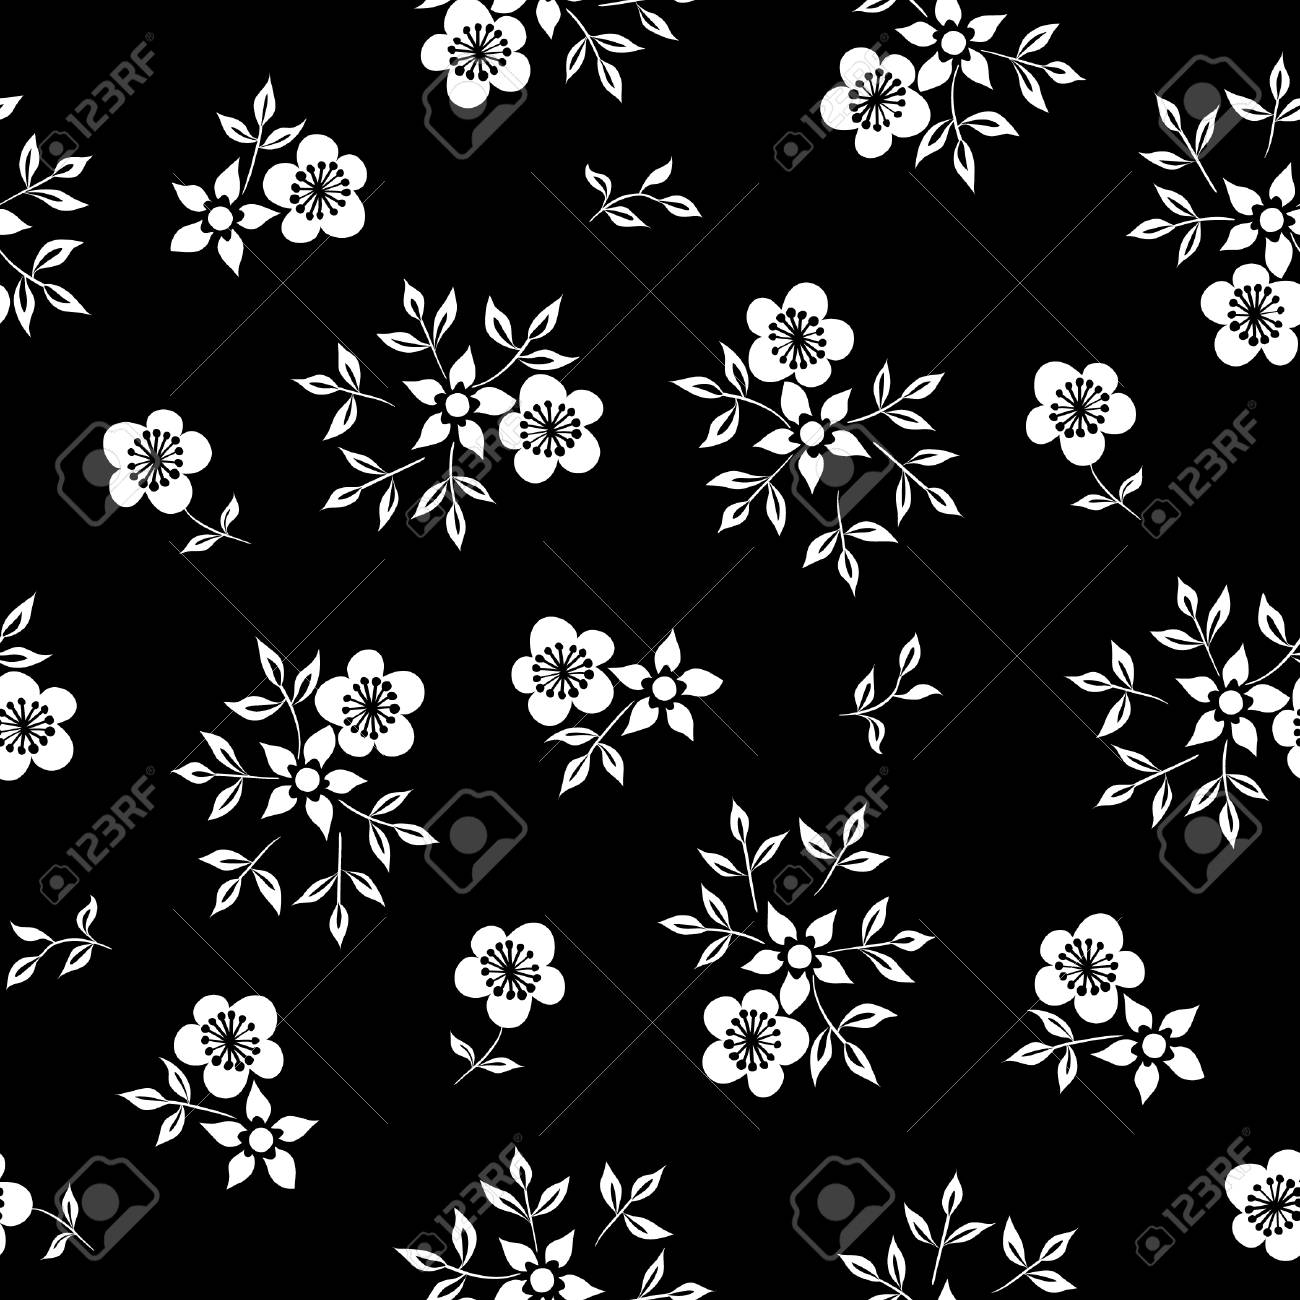 Vector Illustration Of Simple White Flowers On Black Background